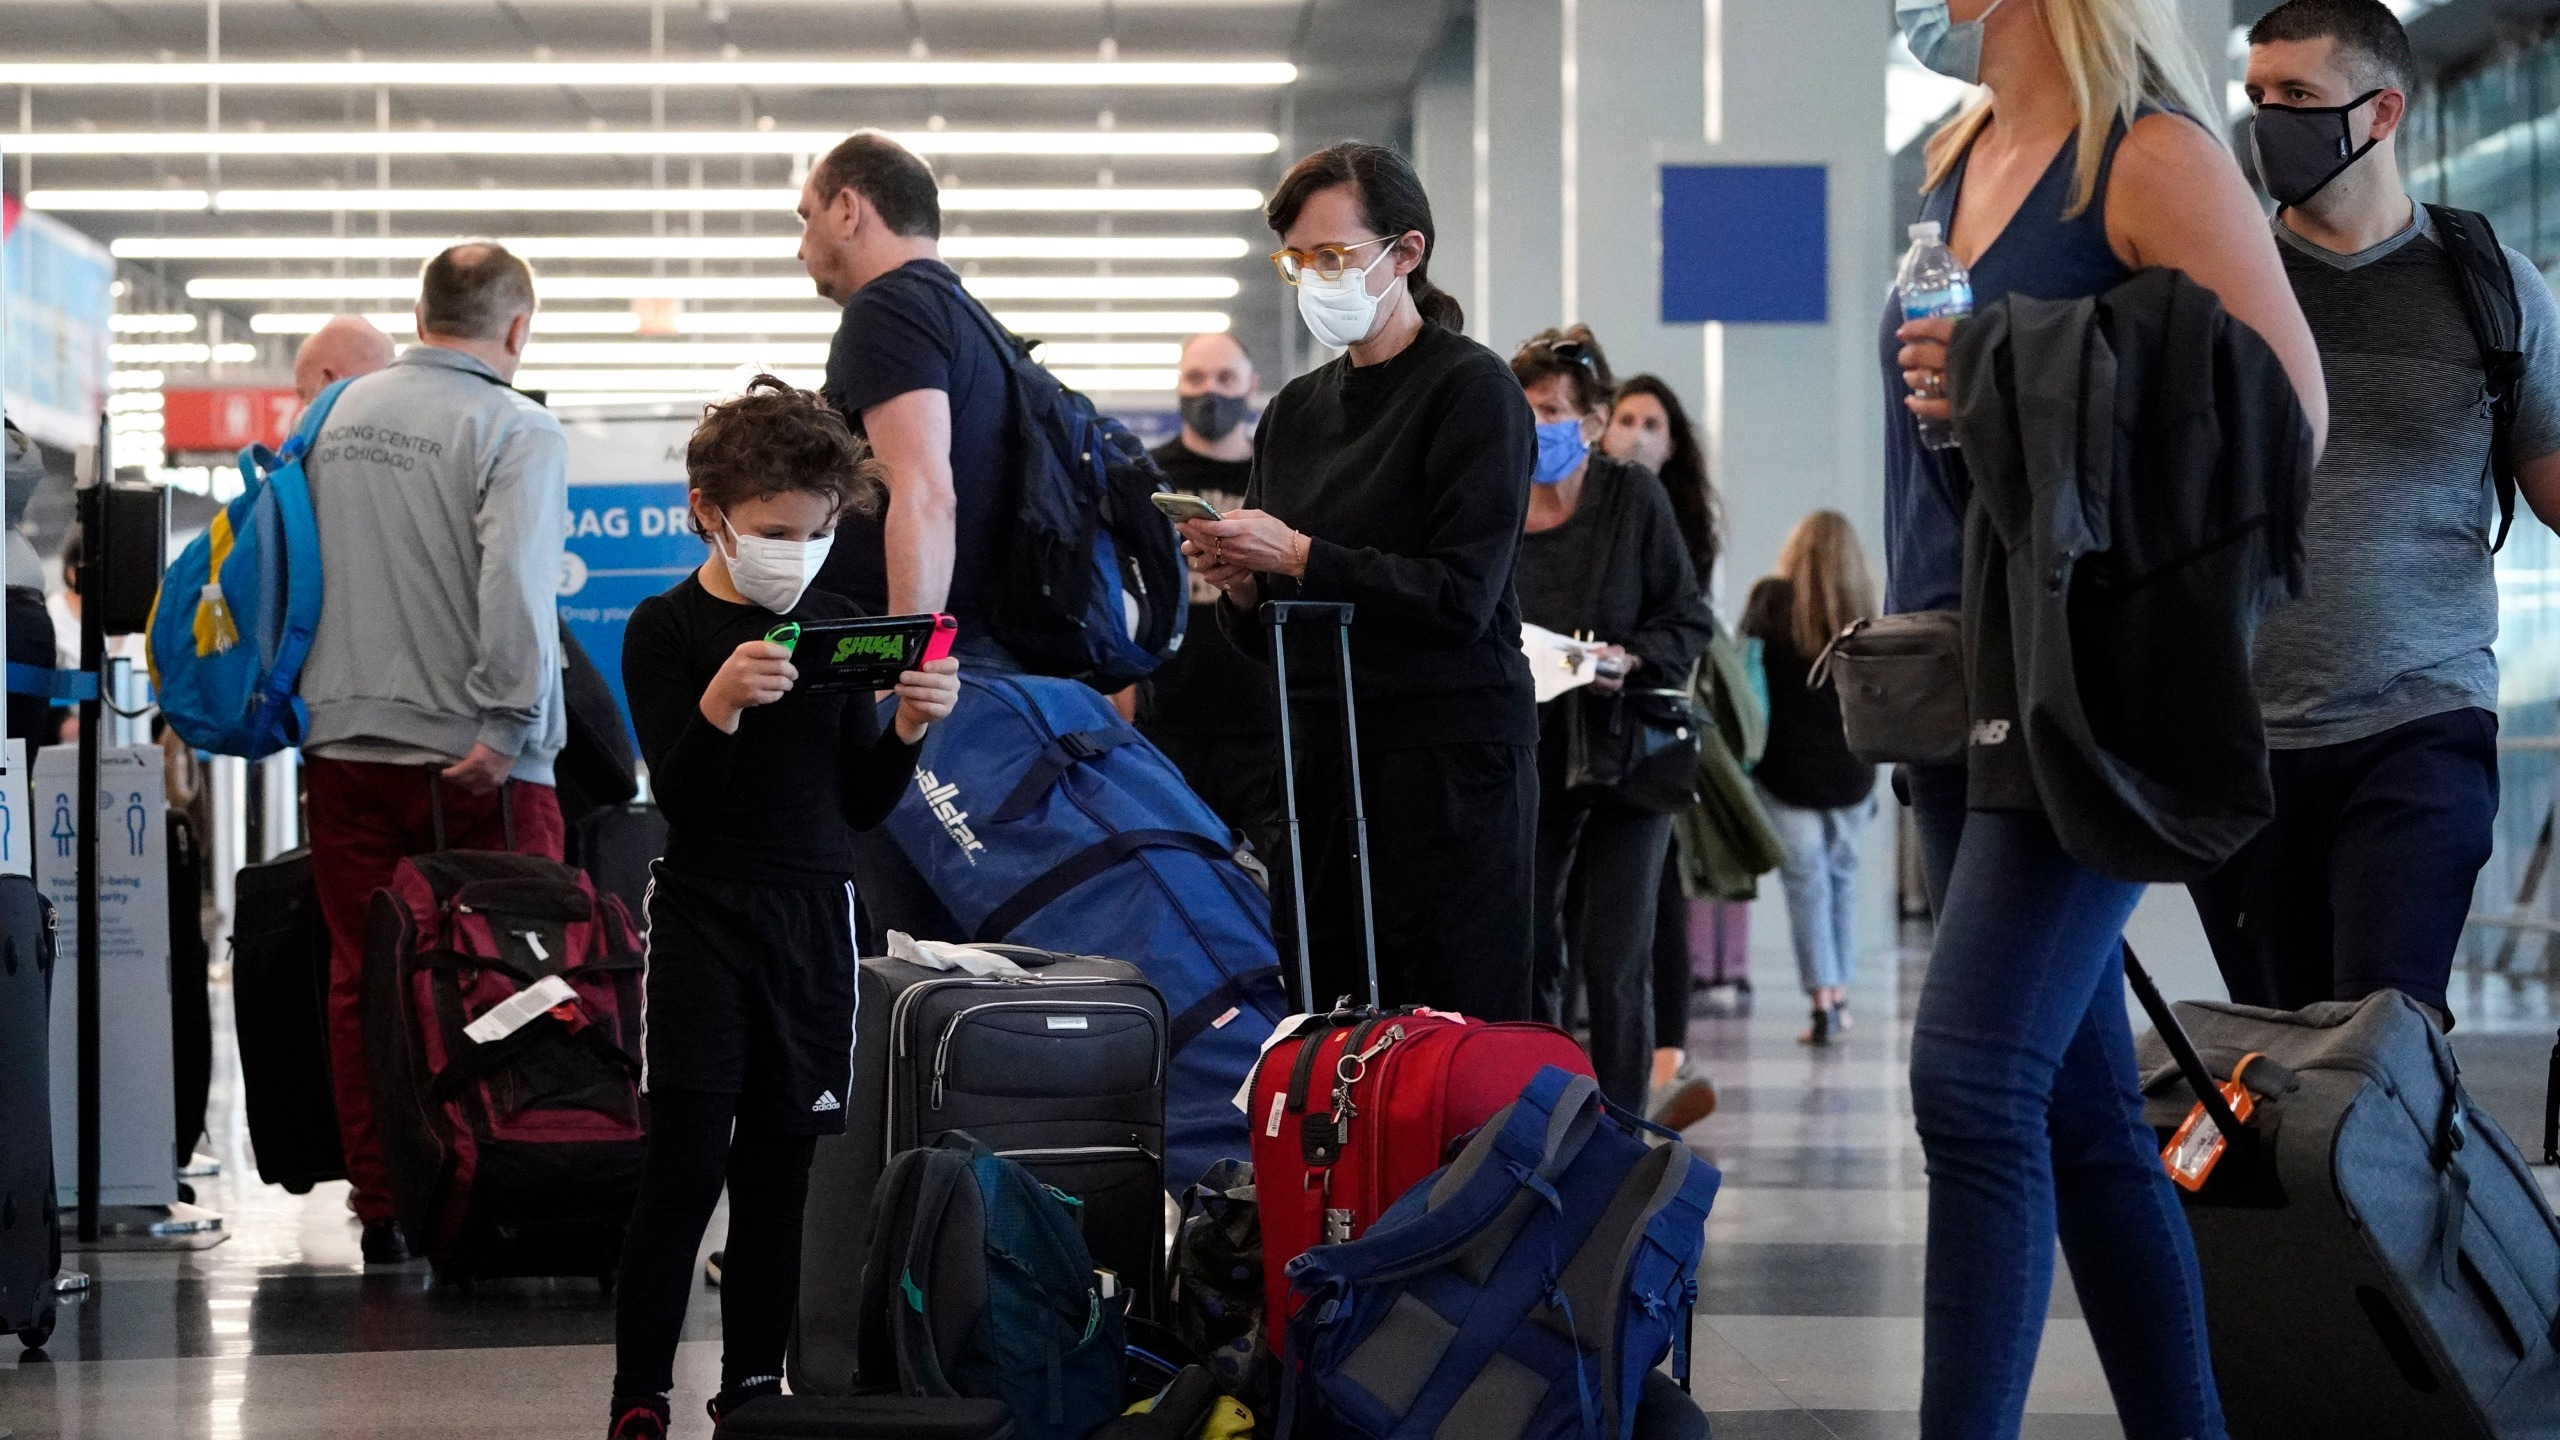 Travelers are lining up at O'Hare airport in Chicago, Friday, July 2, 2021. (AP Photo/Nam Y. Huh)